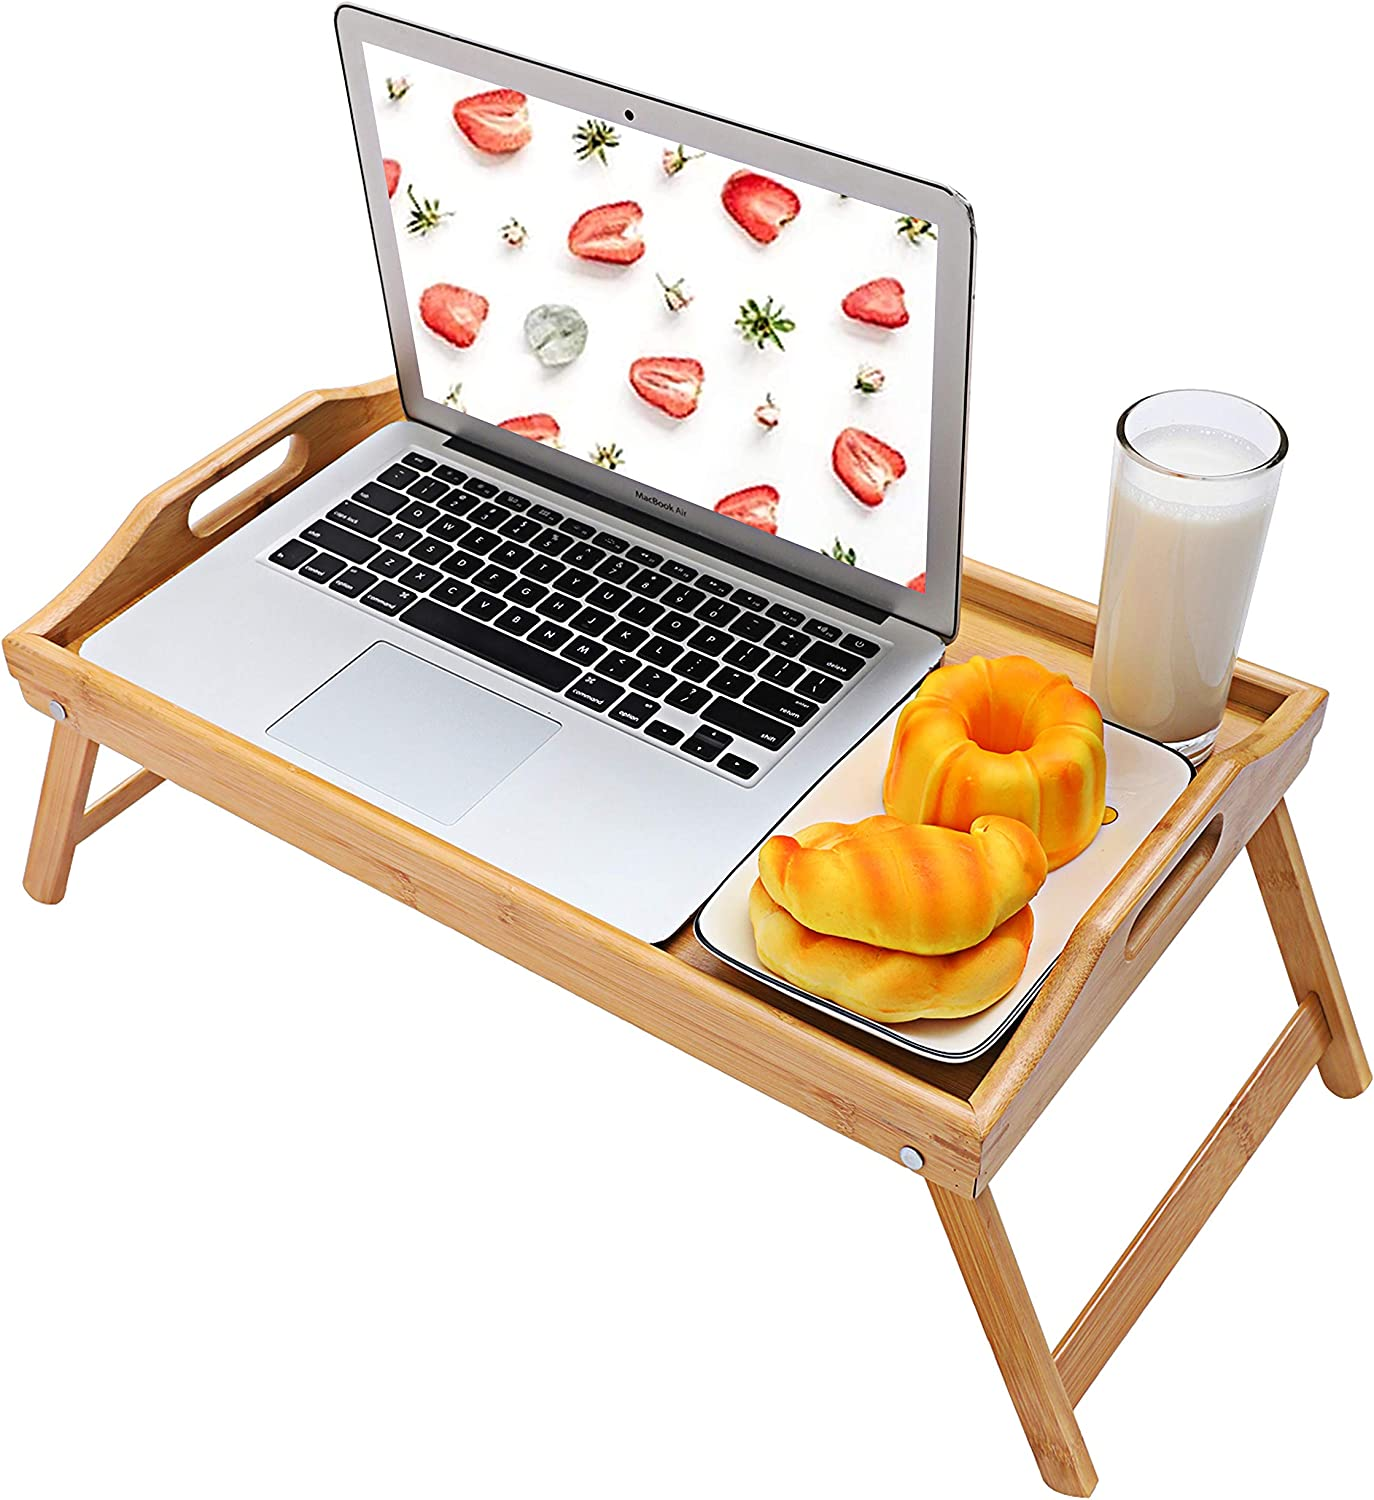 YUHUAWYH Bamboo Bed Tray for Eating Breakfast Trays for Bed Serving Trays with Handles Food in Bed Tray with Folding Legs 24 Inch